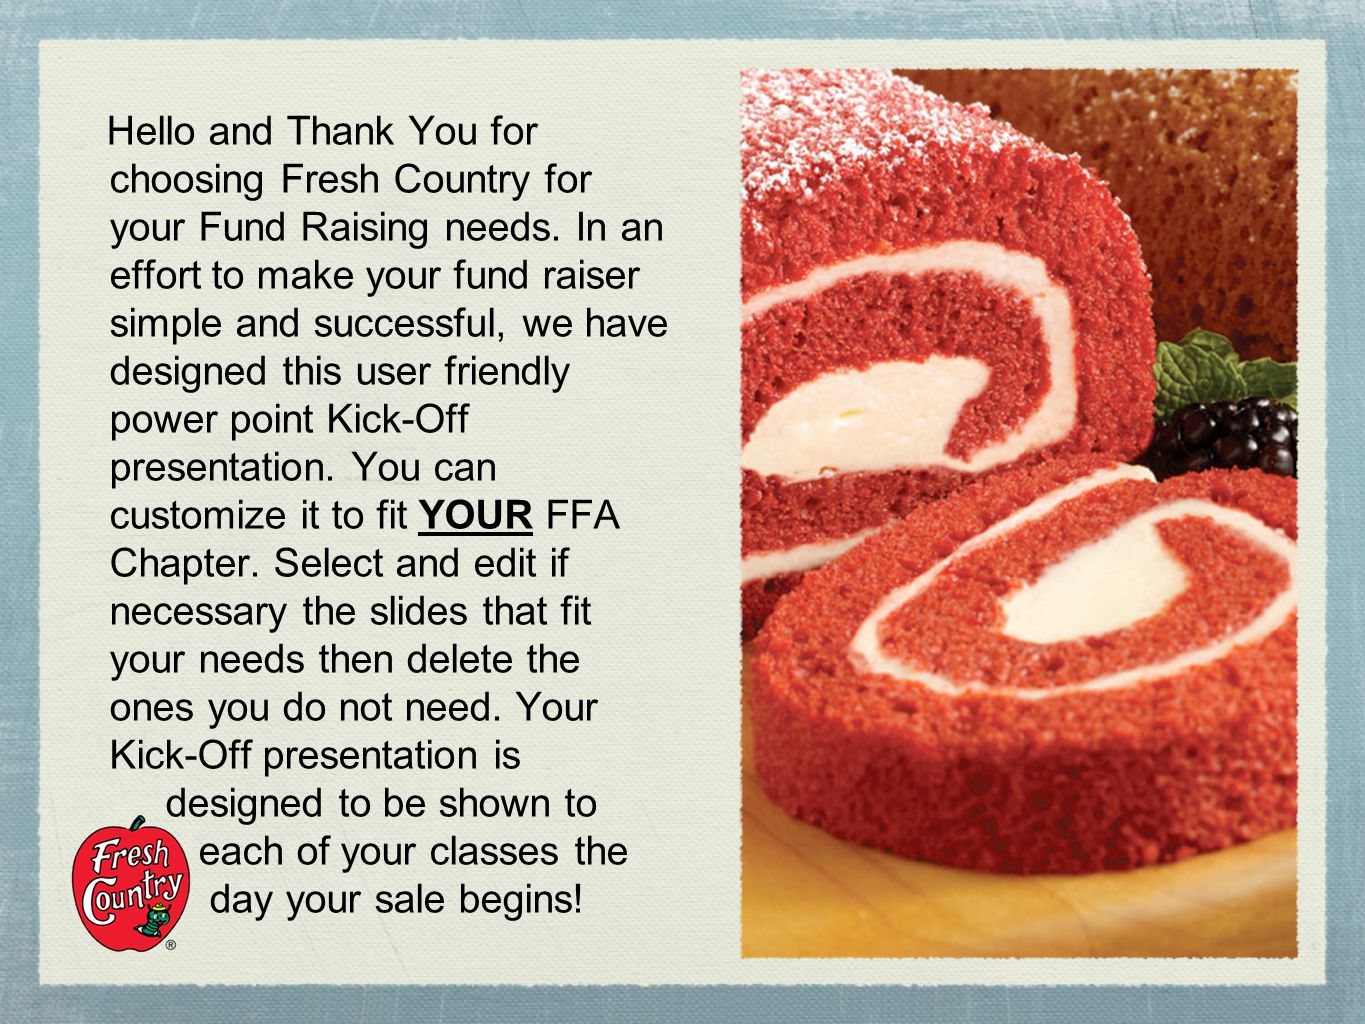 Hello and Thank You for choosing Fresh Country for your Fund Raising needs.